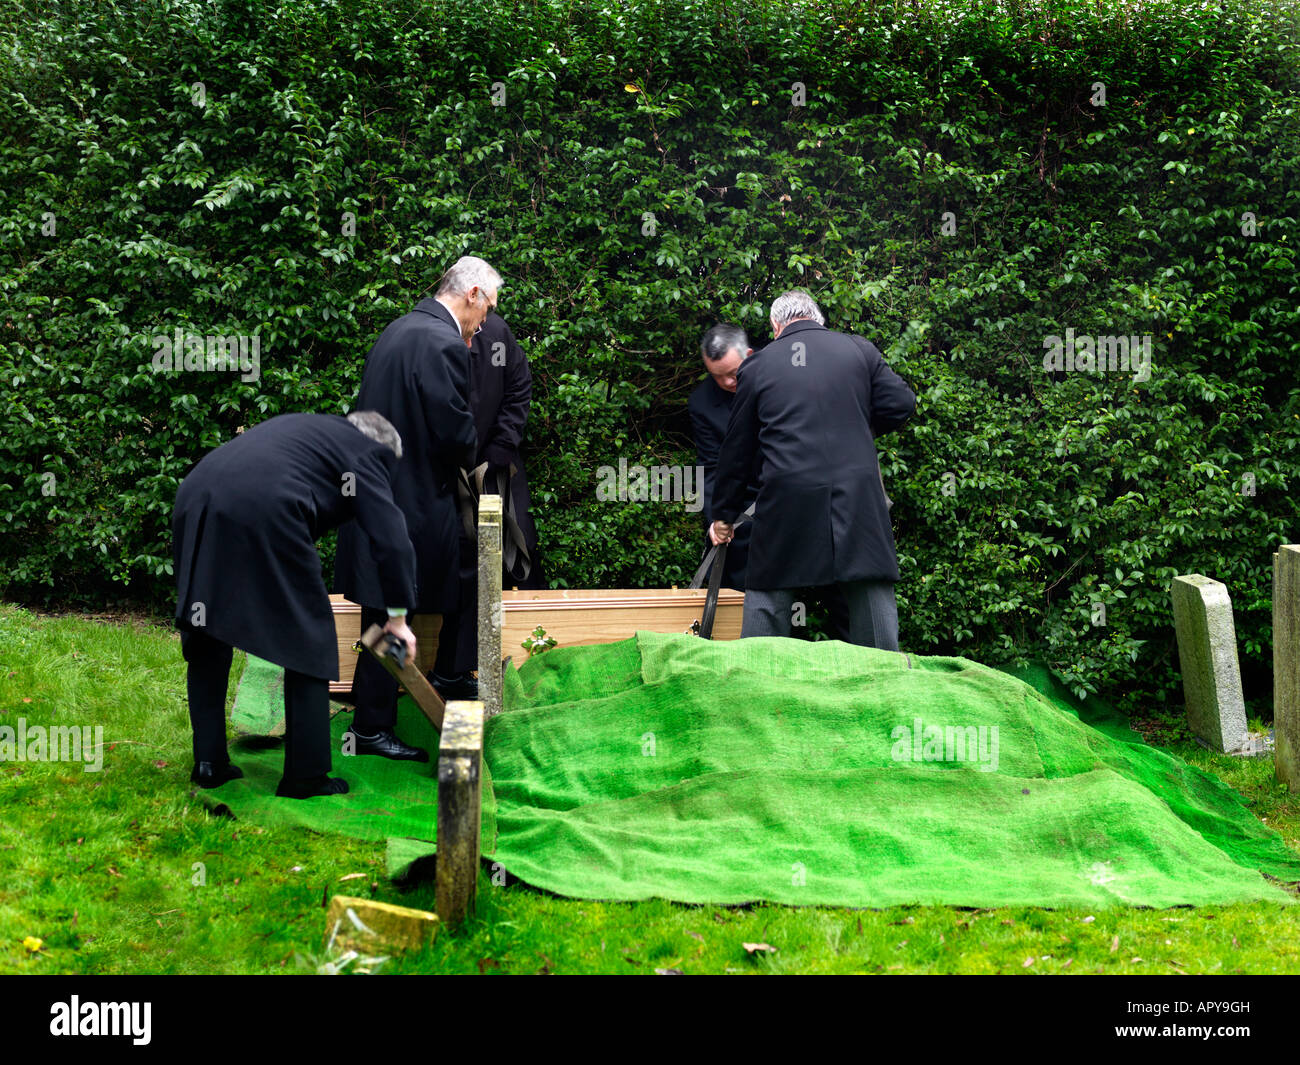 Coffin Imágenes De Stock & Coffin Fotos De Stock - Alamy